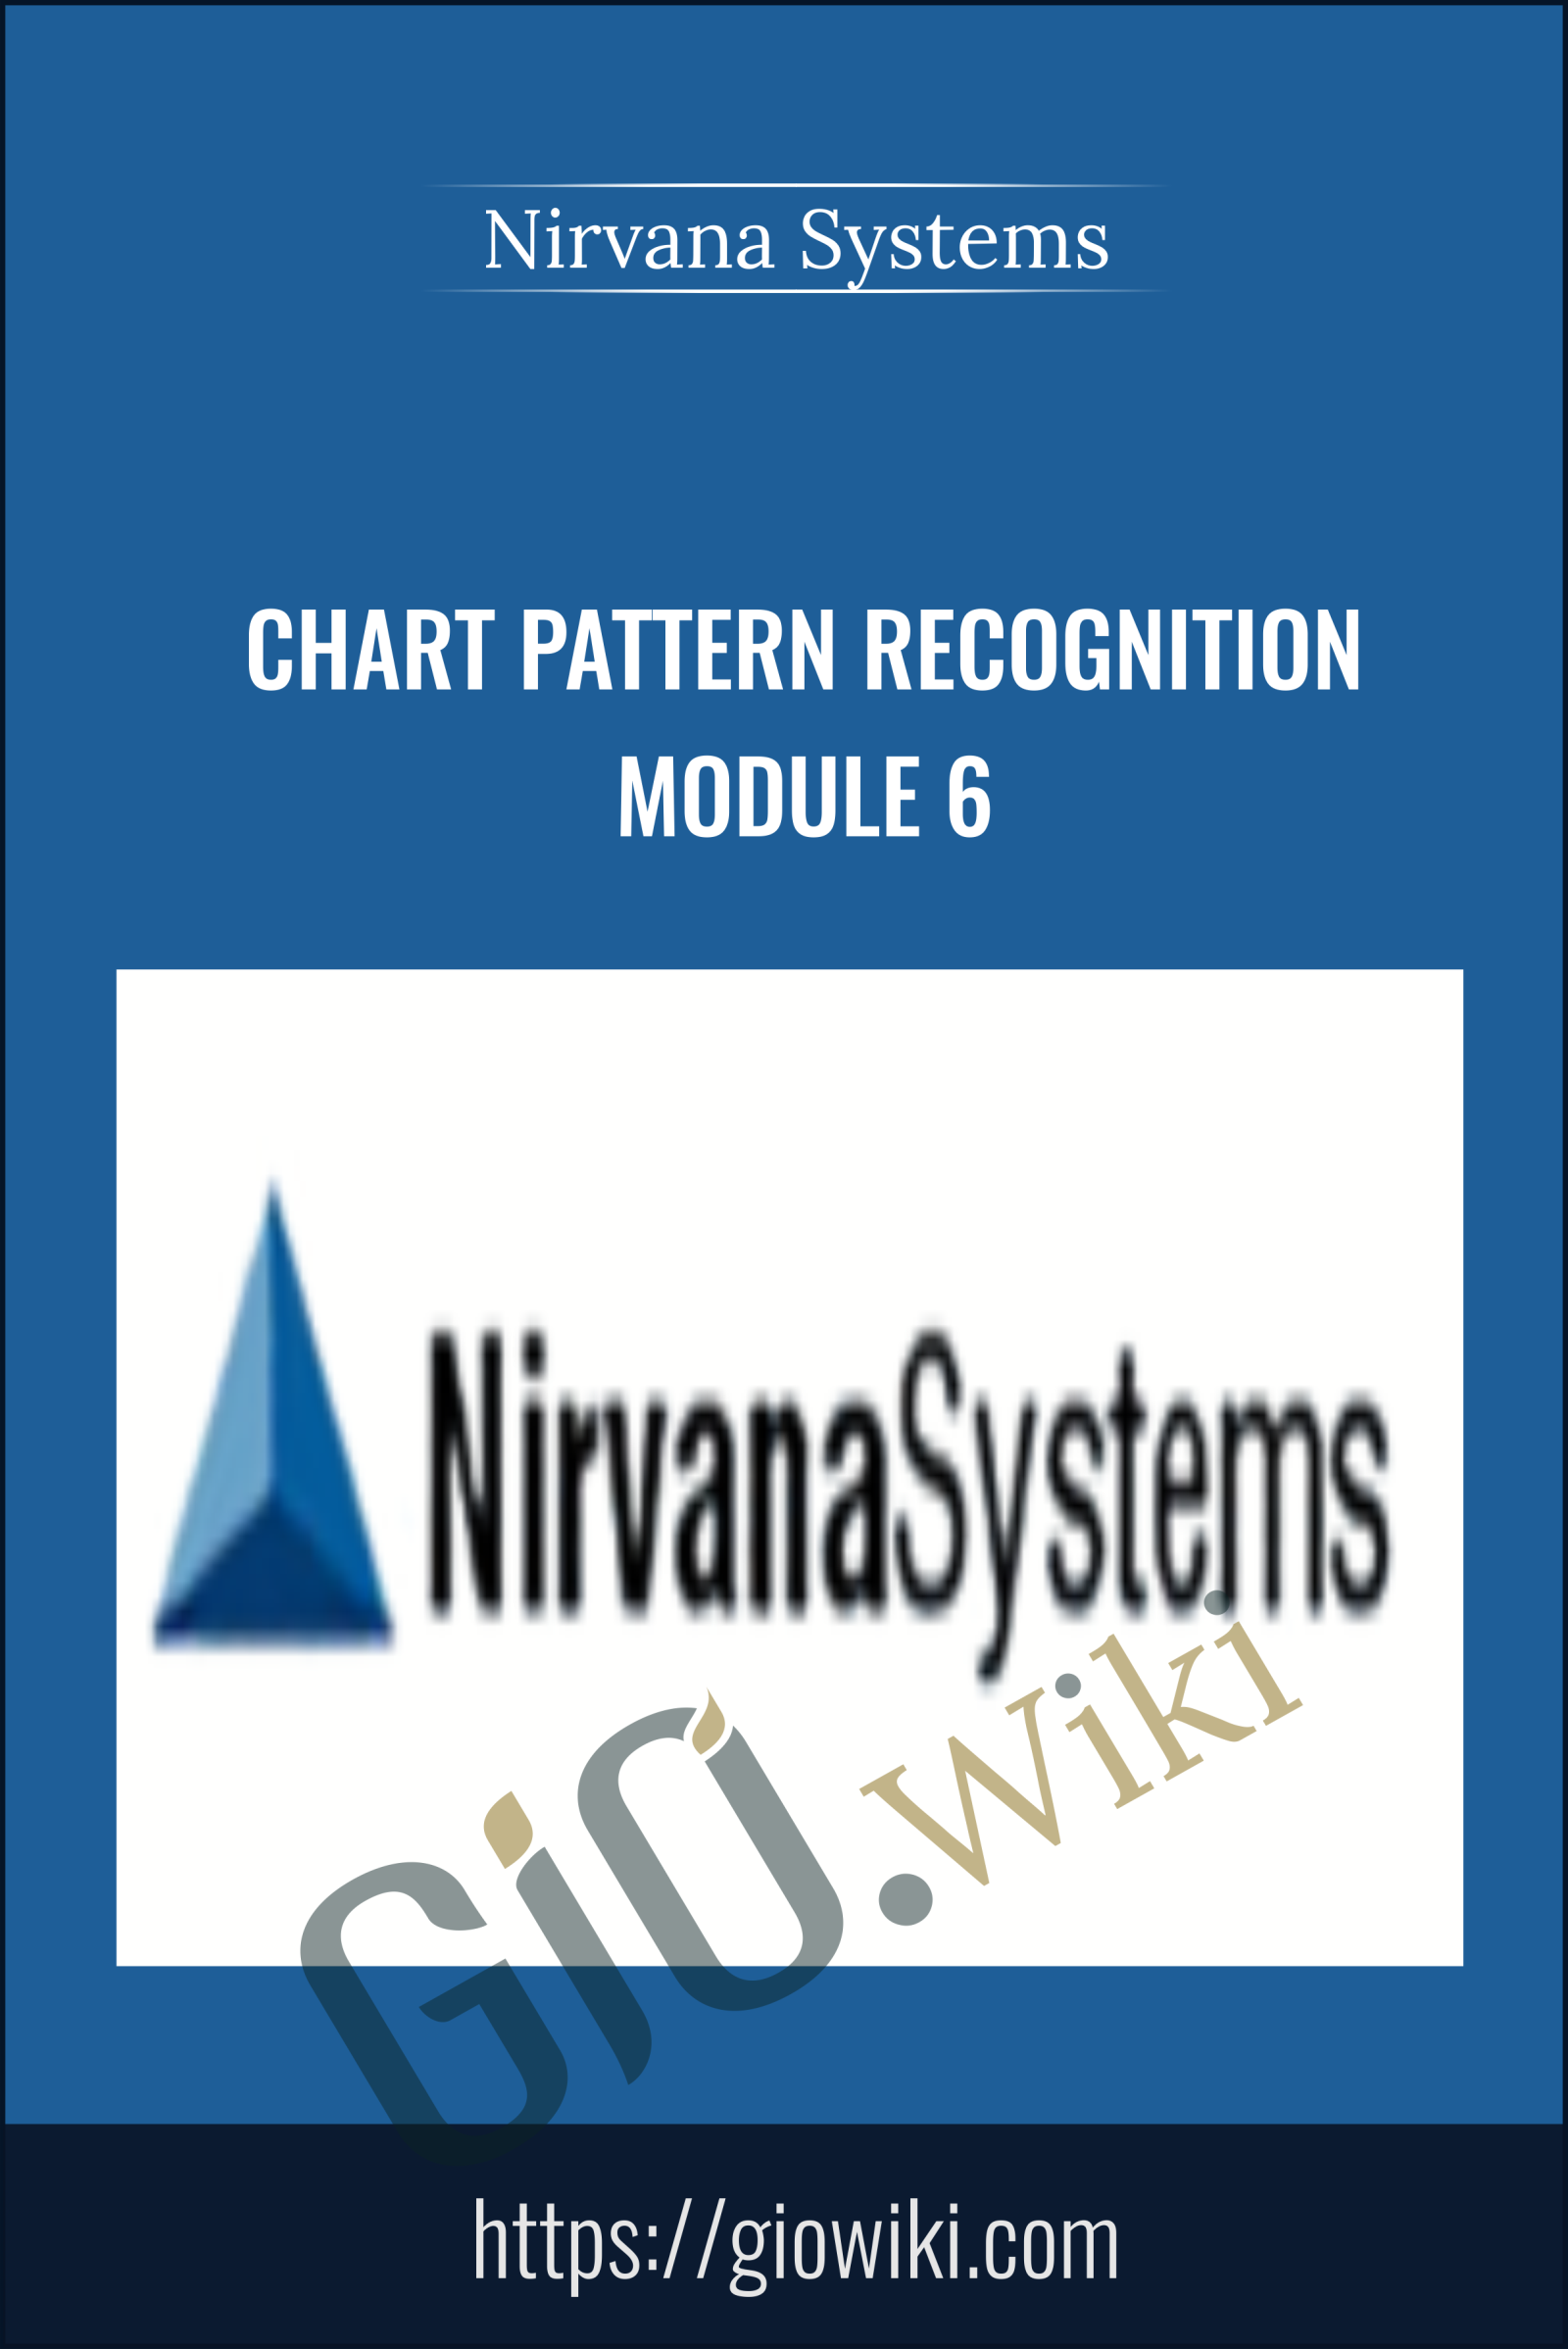 Chart Pattern Recognition Module 6 - Nirvana Systems